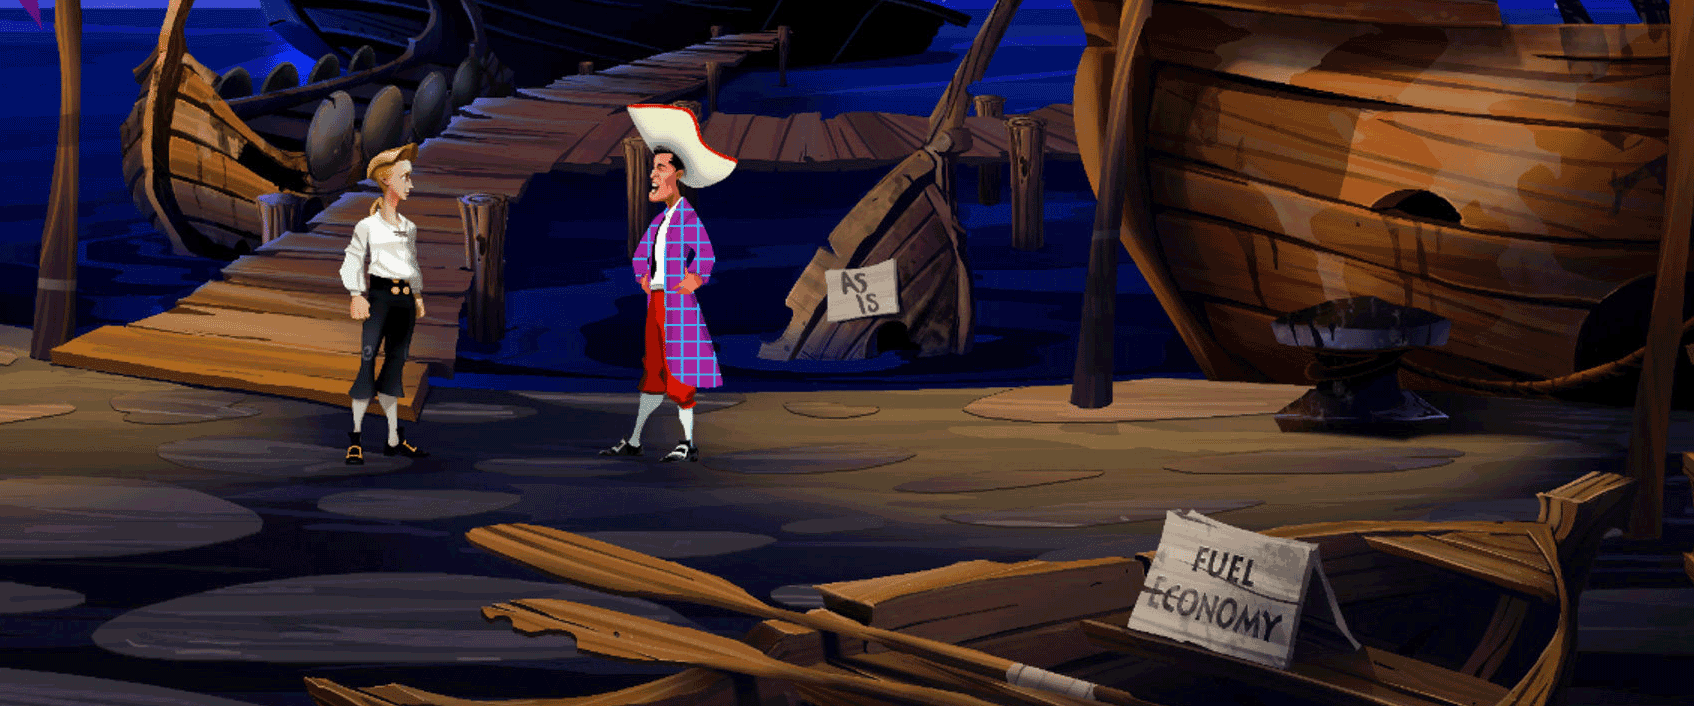 15 Best Adventure Games of All Time